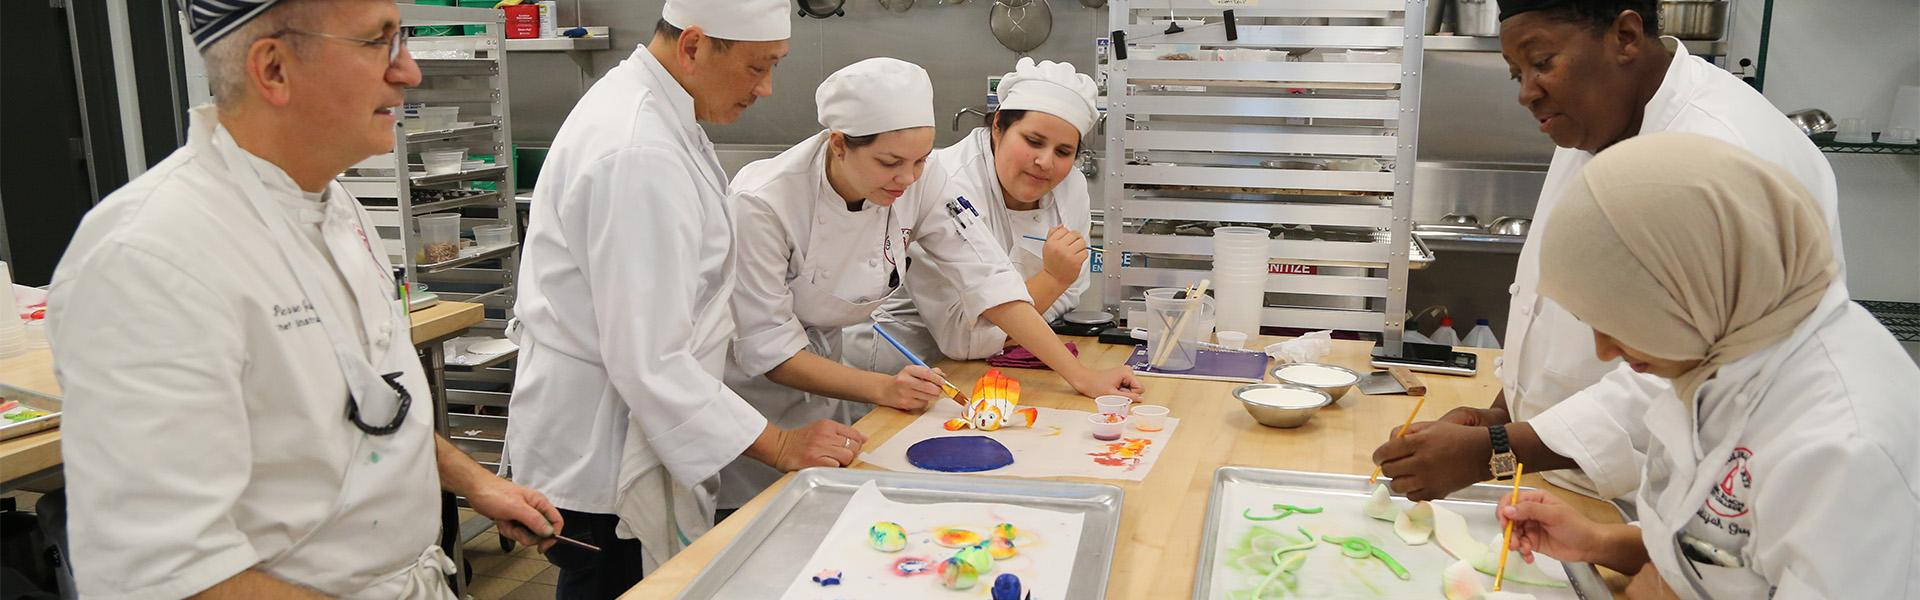 LBCC Students working on Pastry Arts in Culinary Arts kitchen classroom